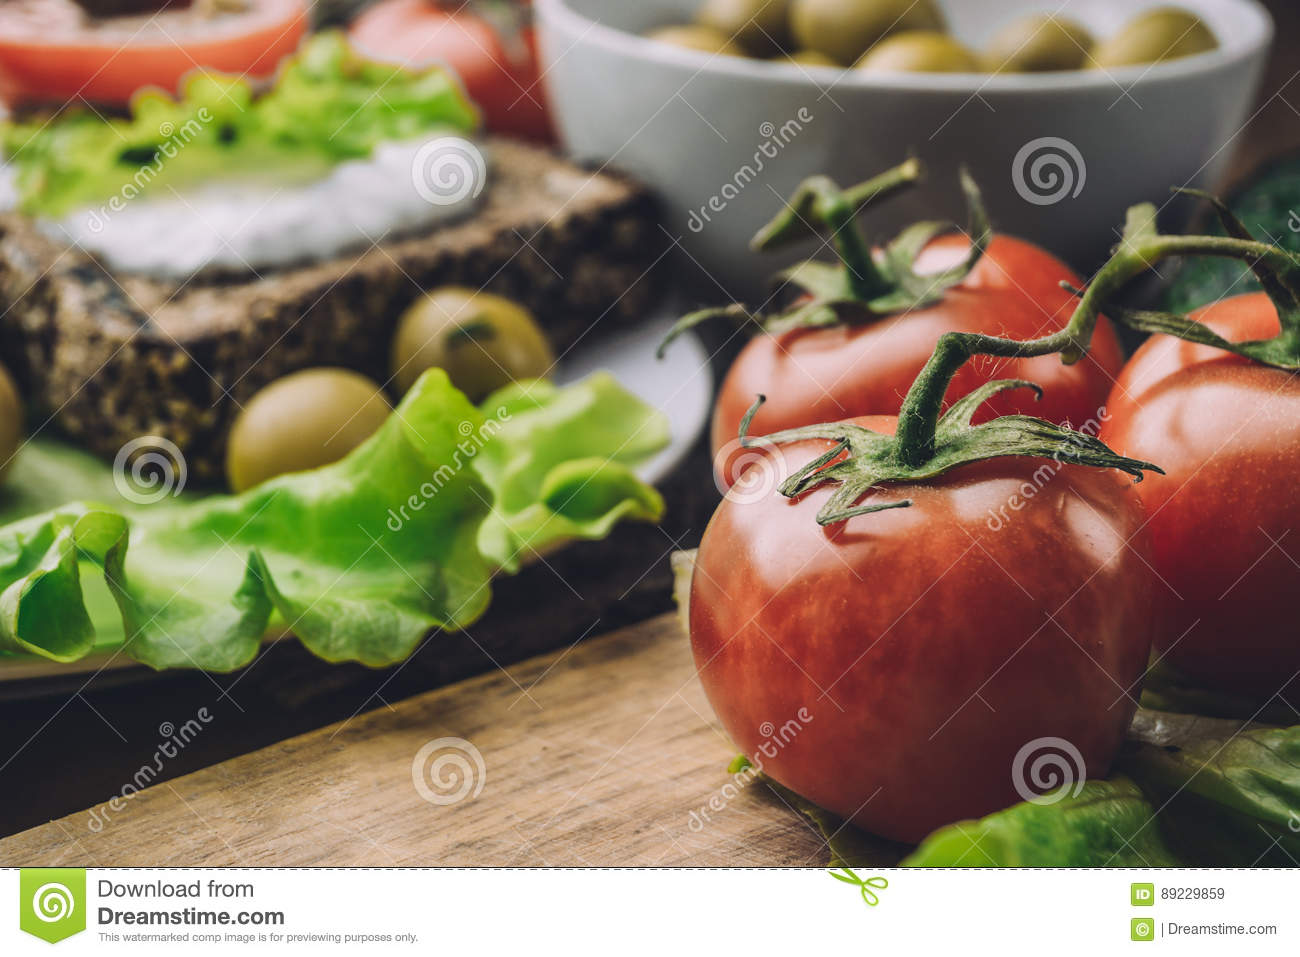 Red tomatoes on wooden board and bread with sauce, olives in bowl on kitchen